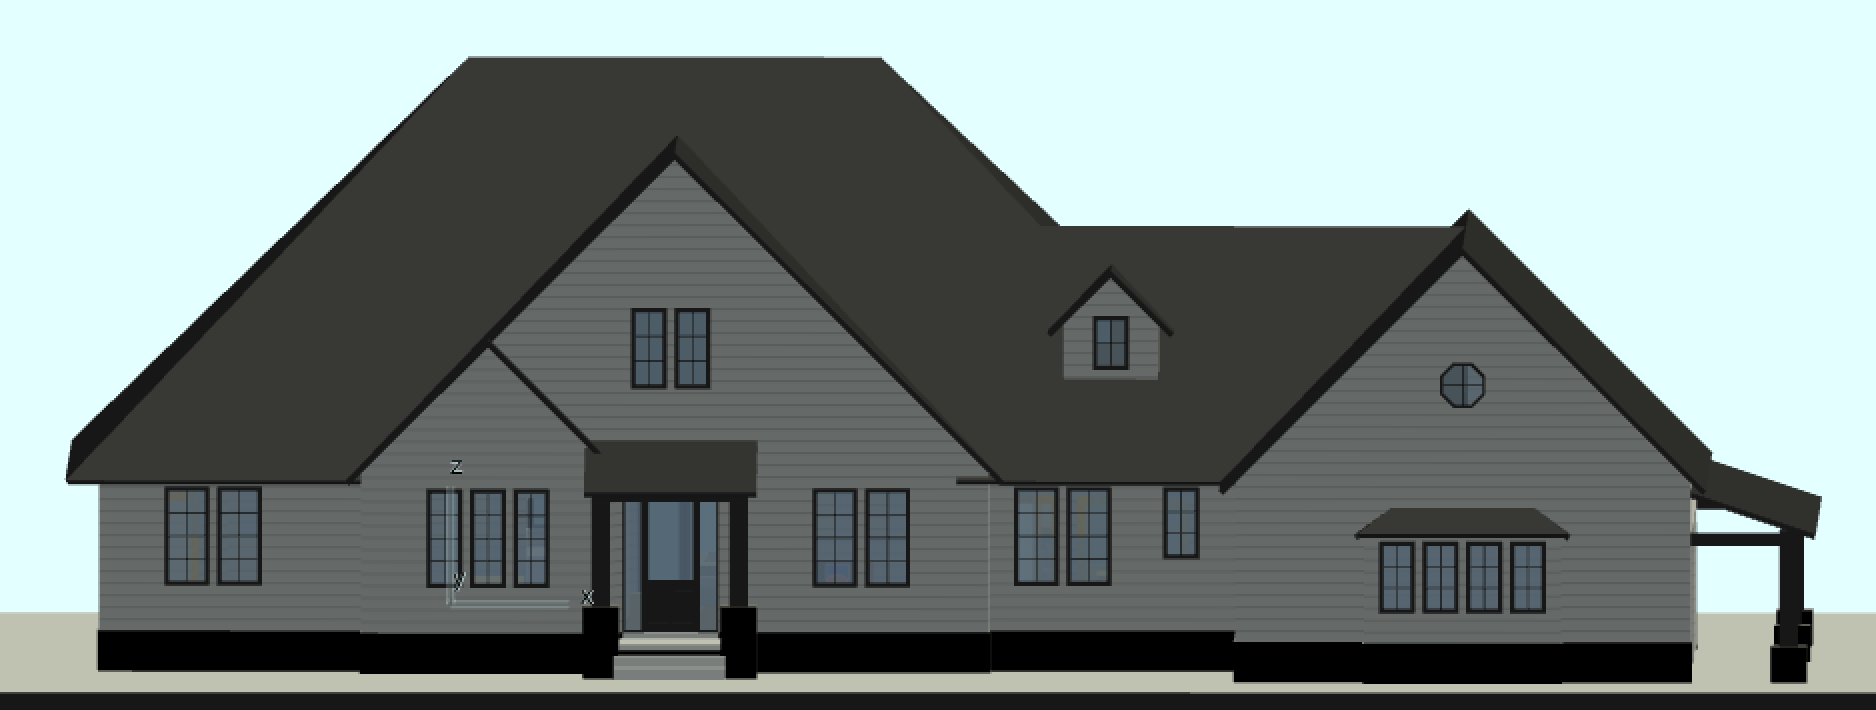 171002_9 MILE HOUSE - 3D.png